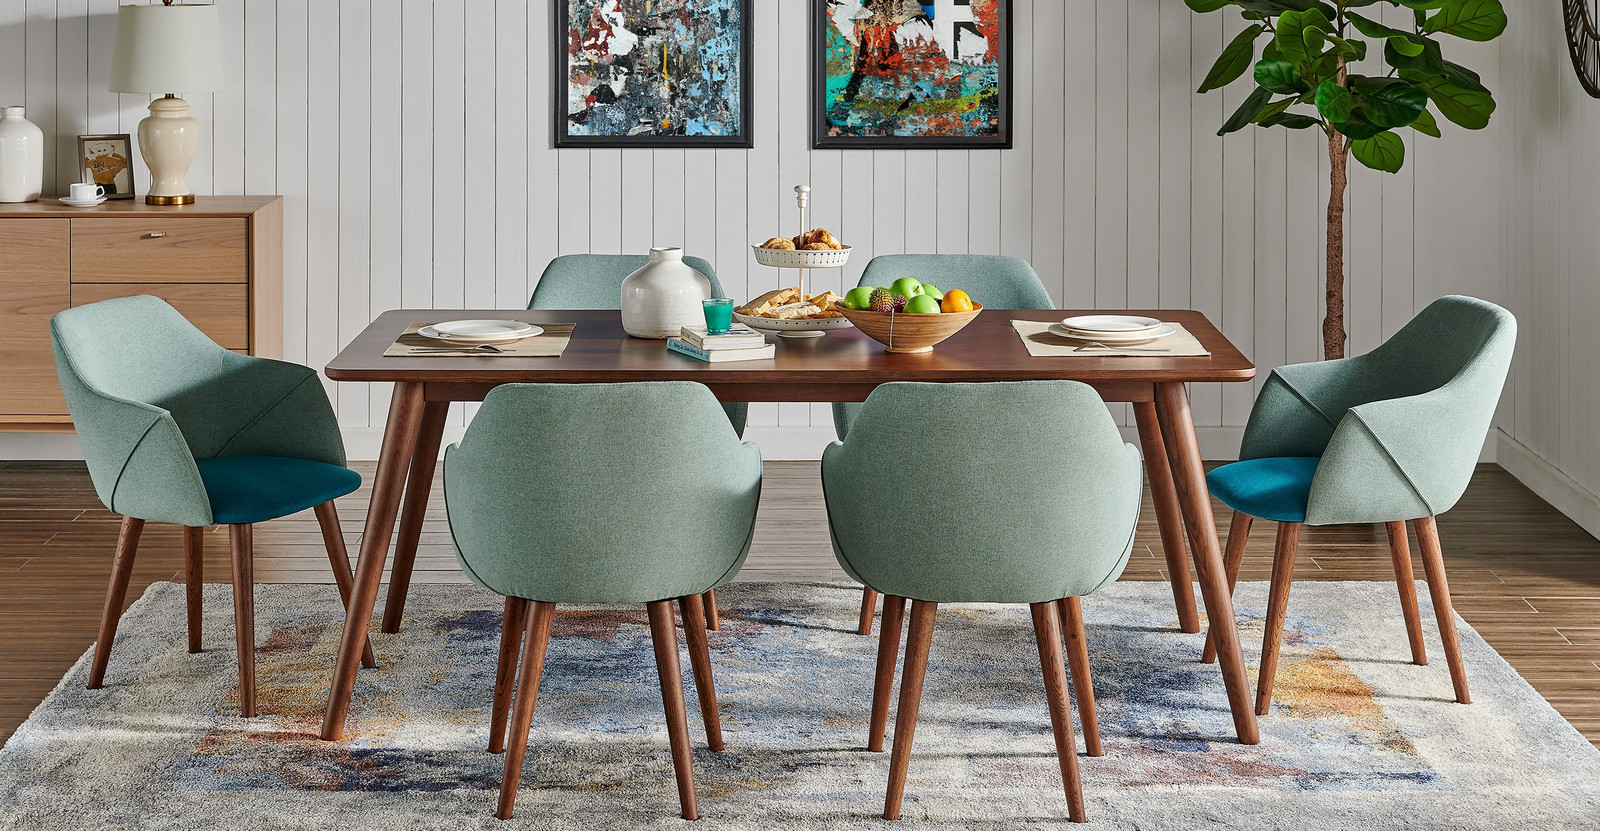 What You Need for a Mid Century Dining Room